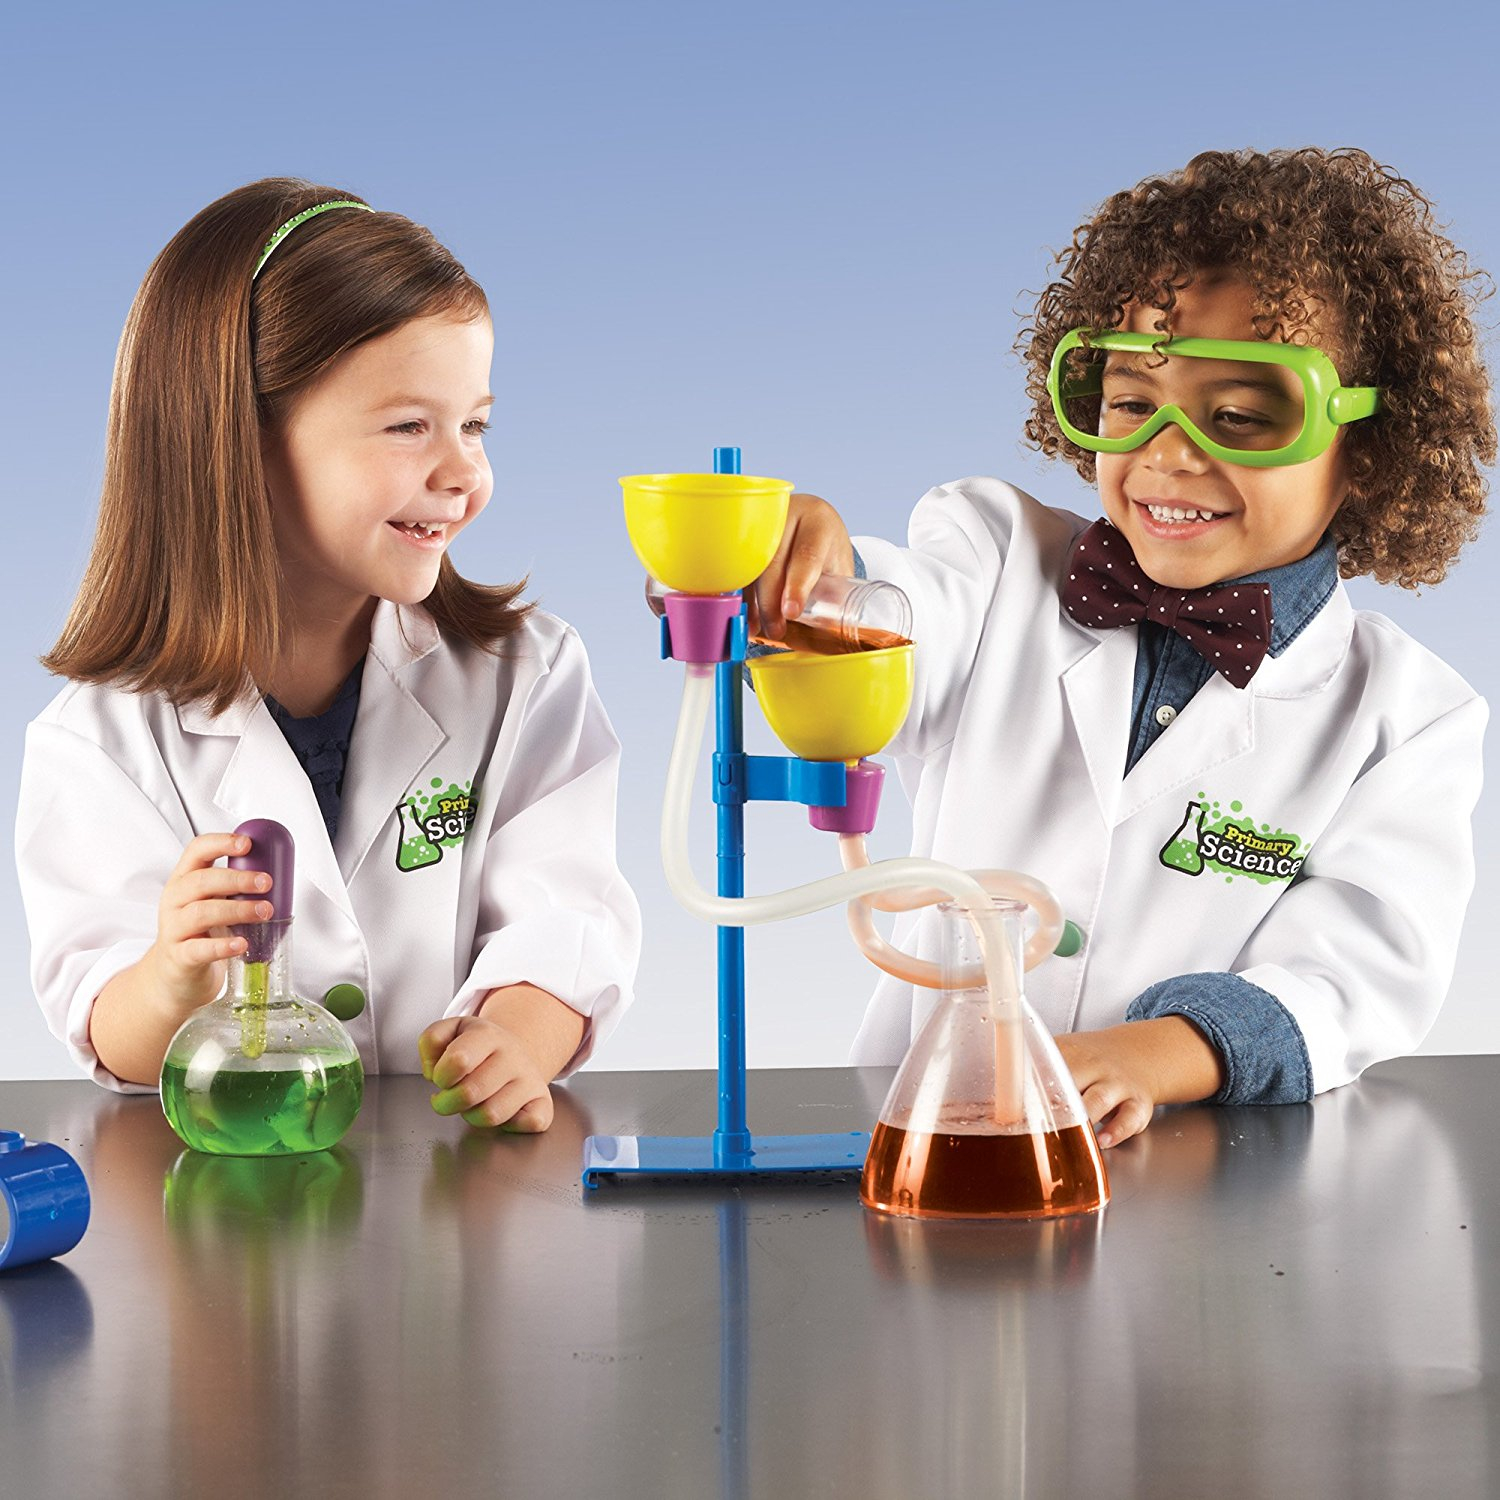 Educational Toys, Educational Toys for Summer Learning, Kids Learning Toys